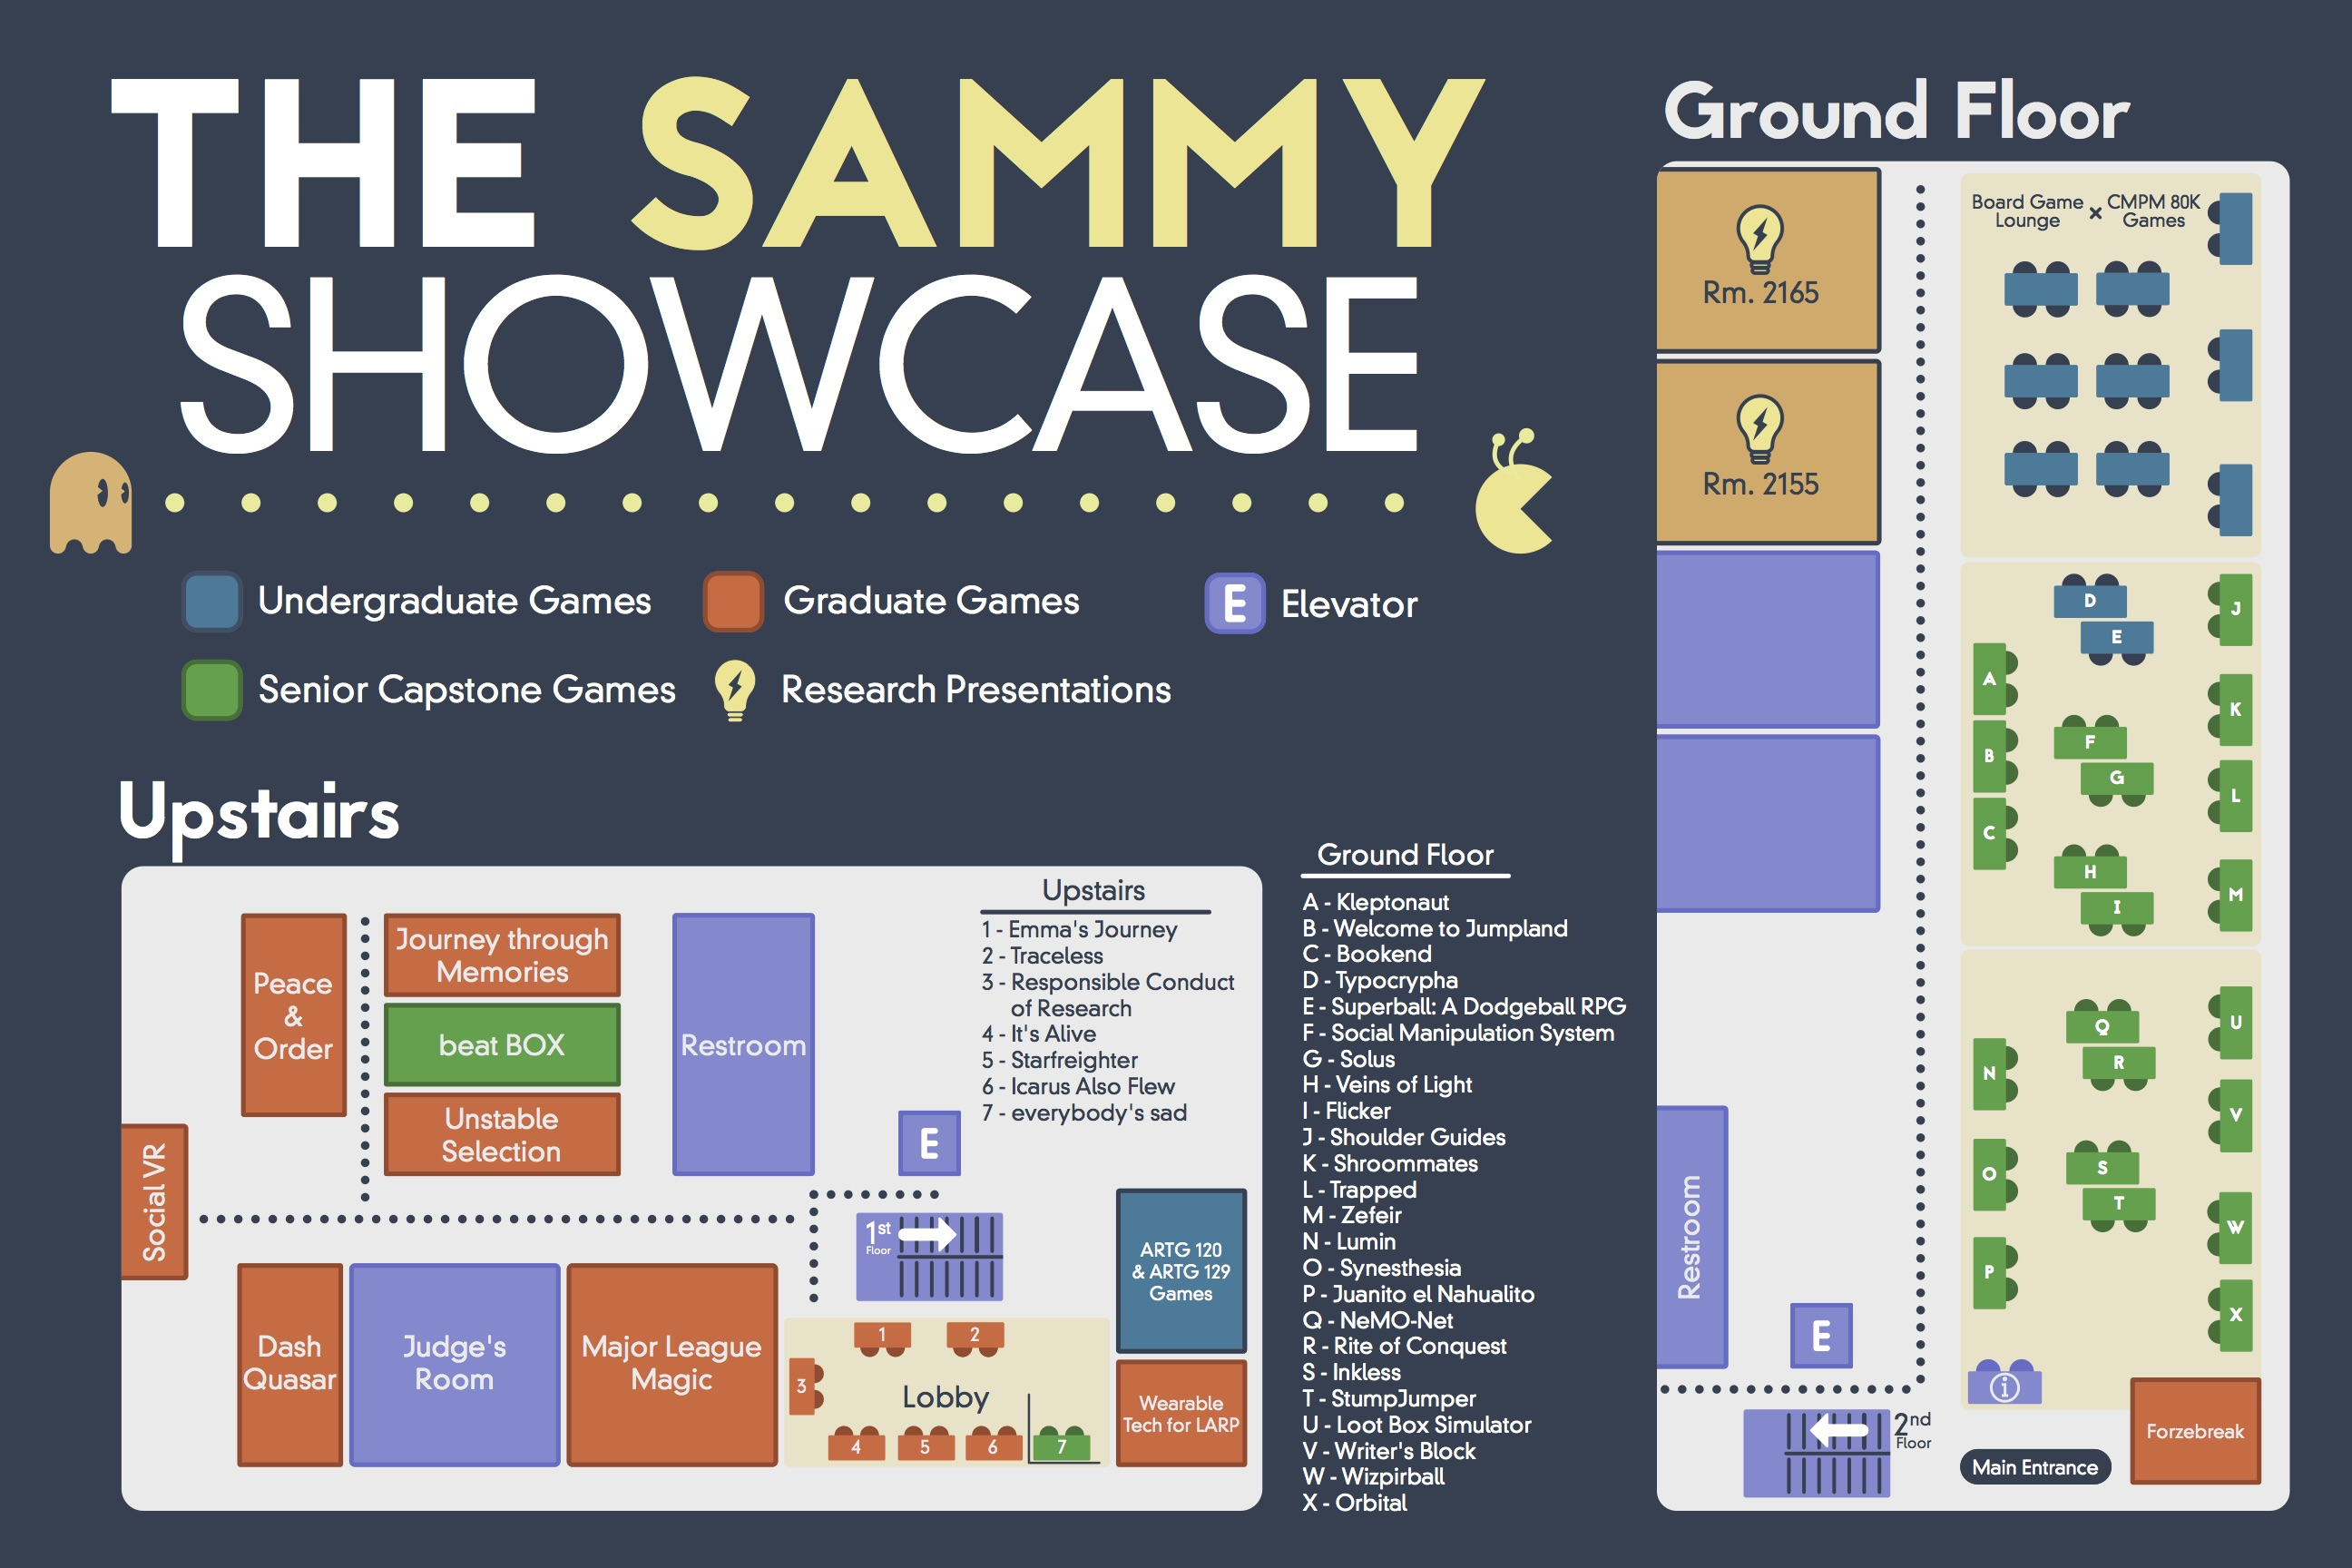 Exhibition map for the 2018 Sammy Showcase